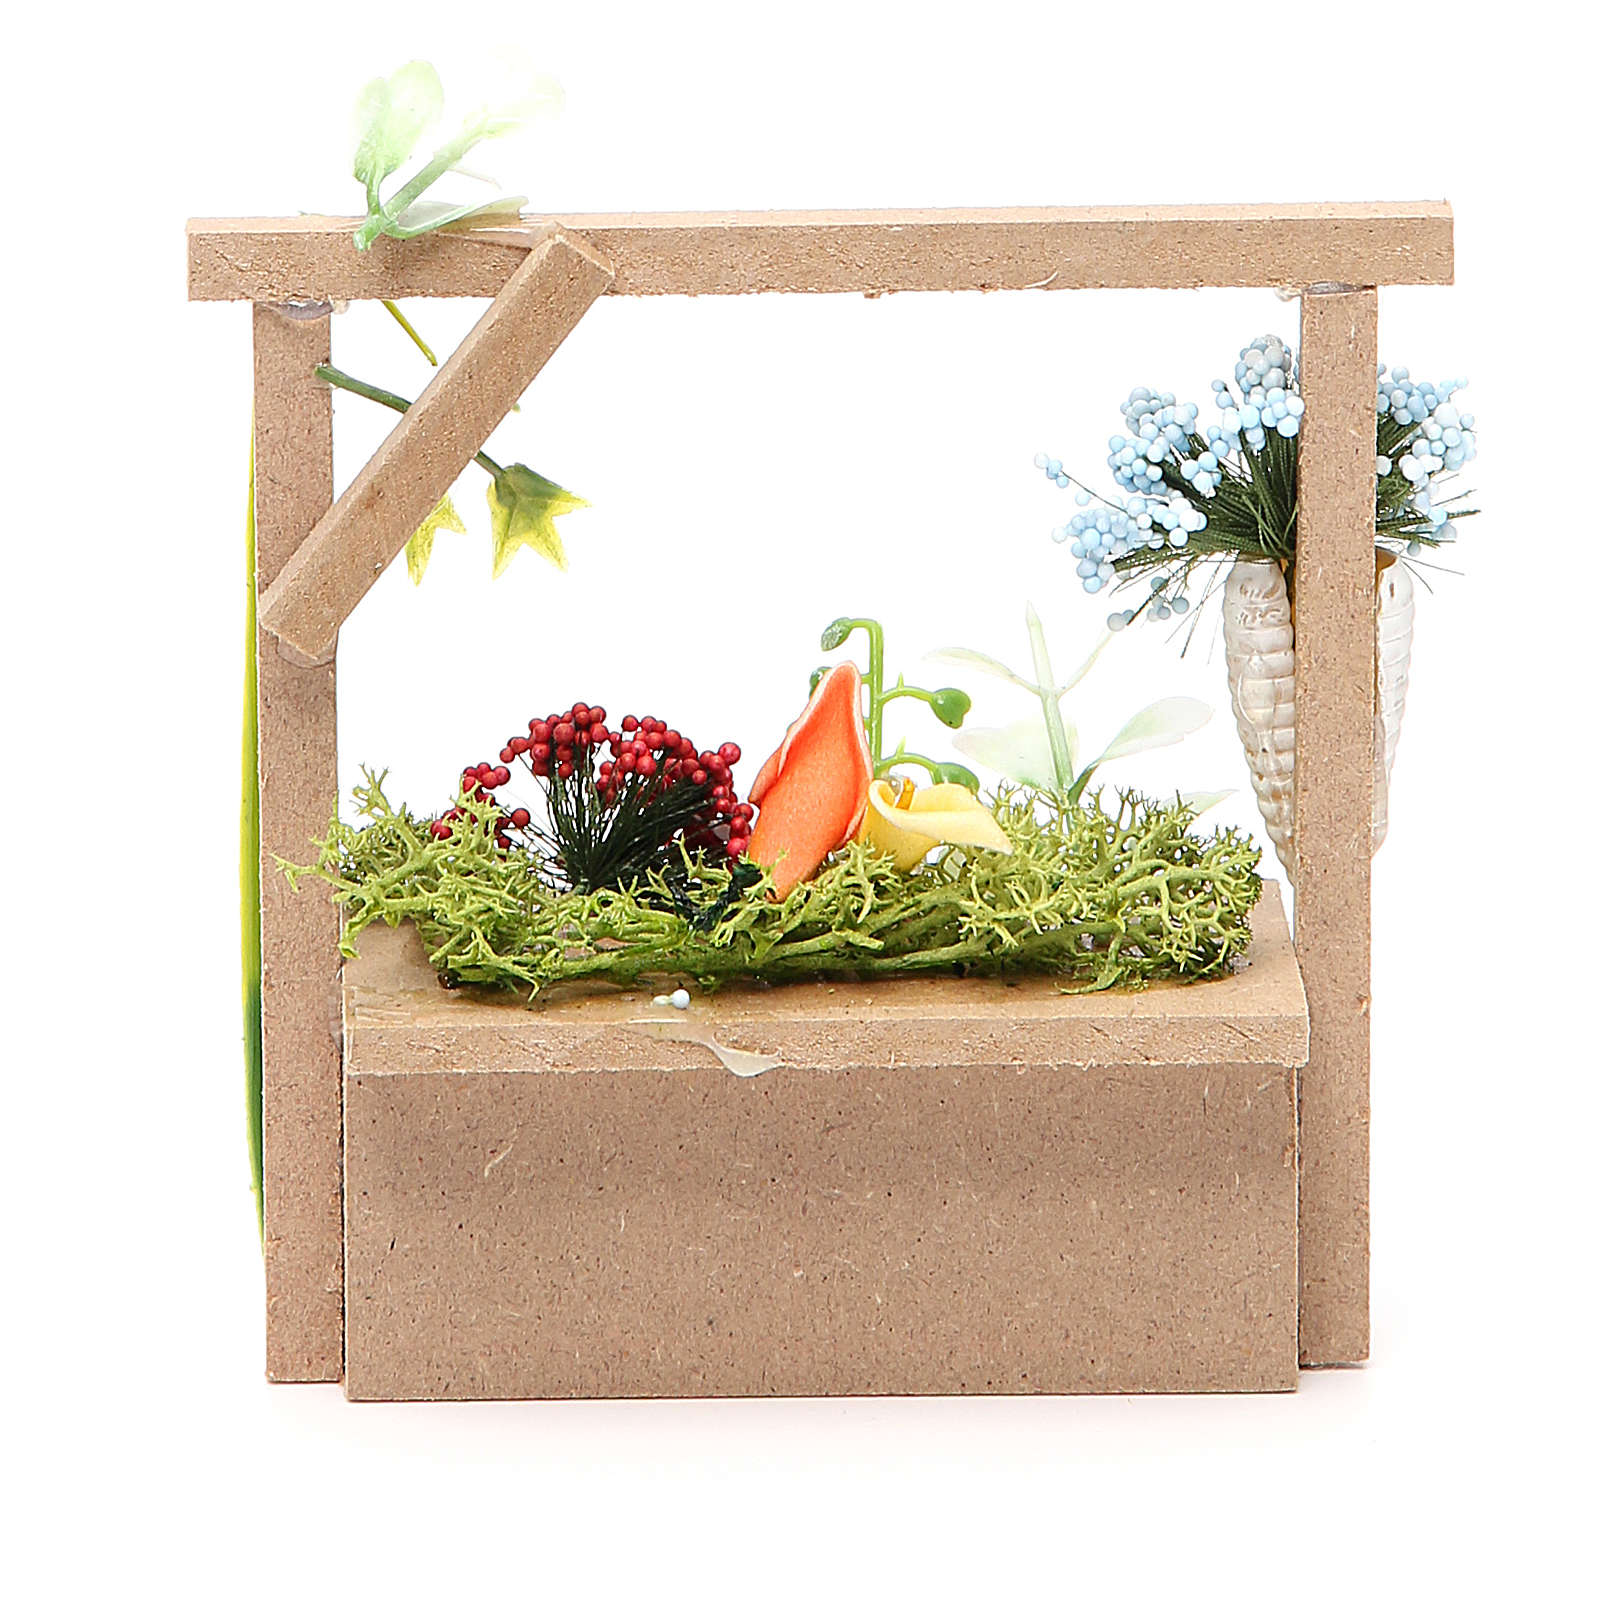 Florist stall for nativities measuring 10.5x11x4cm 4